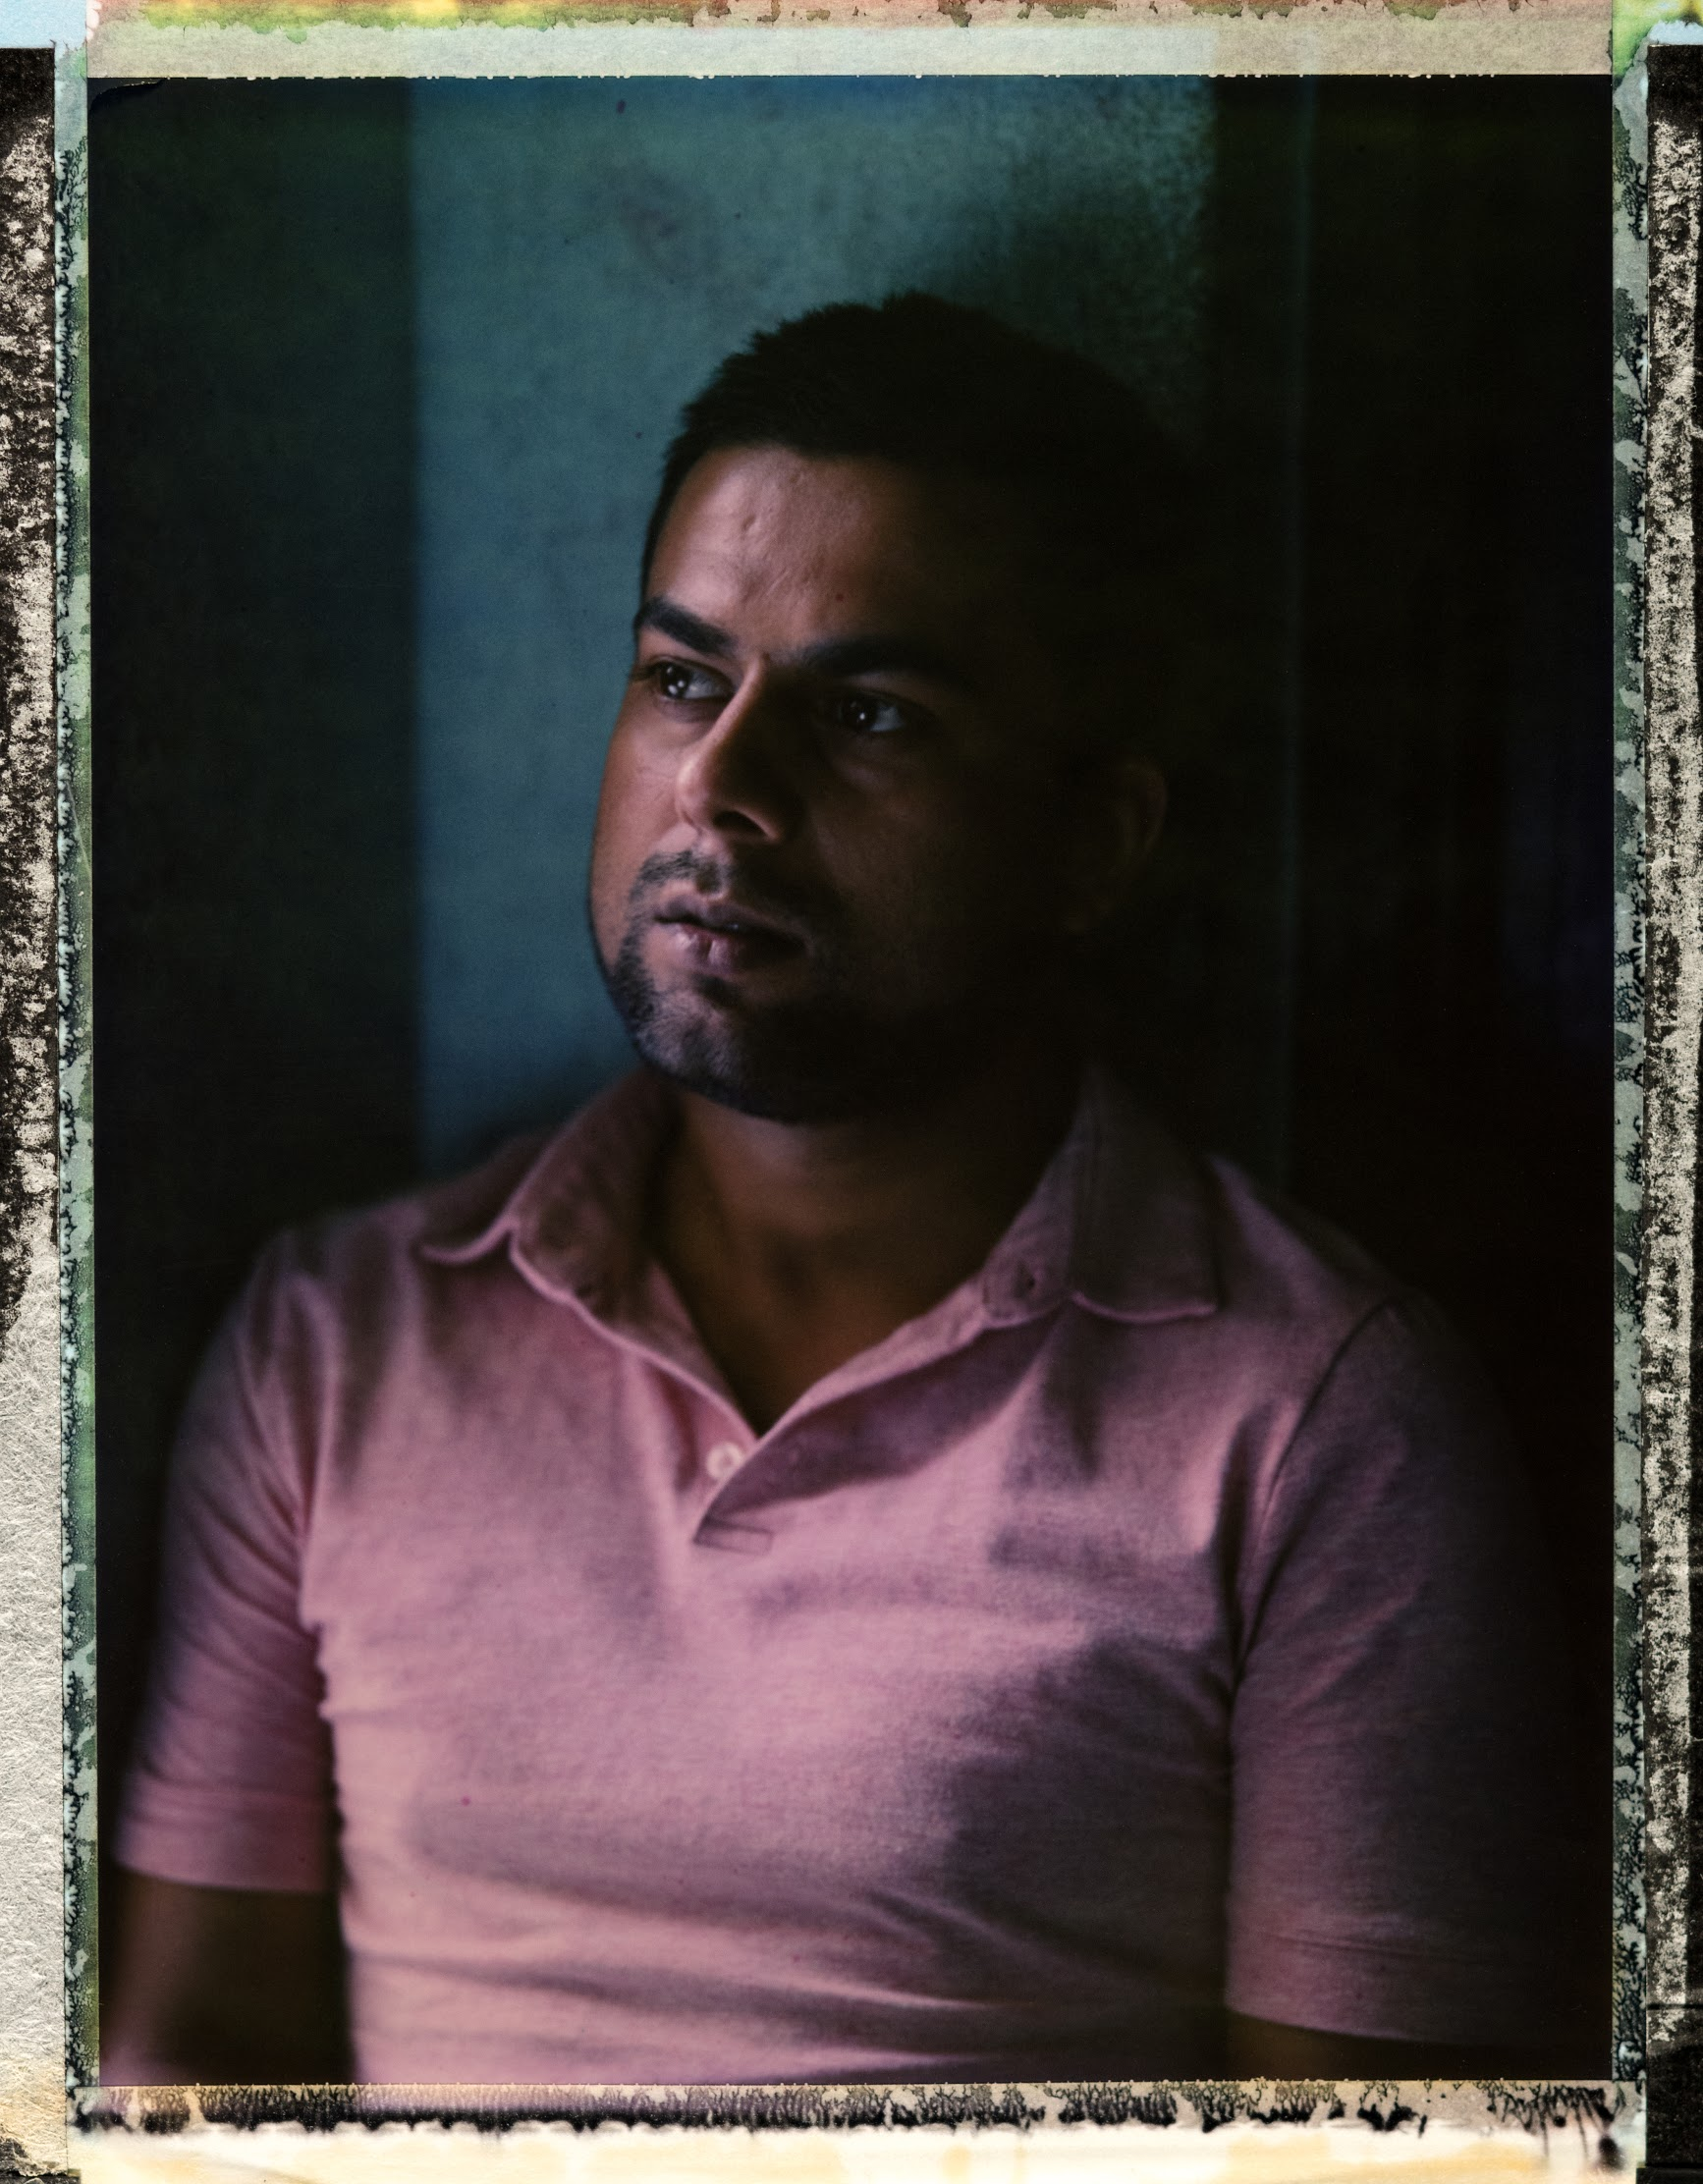 """A posed portrait of 28 year old gay man, LGBT rights activist and 2013 winner of 'Mr Gay Handsom' Bishwaraj Adhikari. """"I lost my friends and family because of my sexuality, because I'm different from others,"""" says Bishwaraj Adhikari of the time when he first came out. He says his family in rural Nepal thought to be gay meant their son was going to transition to be a trans woman. It was too much for them. """"They didn't know about gays and lesbians,"""" he says. """"My Dad said 'if you are going to be like this - you have to leave this family.'"""" Bishwaraj says his life is much better now – """"I'm determined to be happy,"""" he says. He also wants to ply his part in making Nepal an LGBTQI+ friendly country – """"I am determined to fight with this community and to claim rights of LGBT."""" Nepal's current LGBTQI+ laws are some of the most open in the world – including the legal recognition of a third gender. Tangible implementation of the various government orders has been piecemeal though, a 2014 United Nations report noted. And government officials have continued to harass LGBT groups, including by alleging that organizing around homosexuality is illegal in the country. Furthermore, while laws are progressive, discrimination is wide spread, especially within families, where marriage between a man and a woman and the bearing of children are expected of young Nepalese. Katmandu, Nepal. 28 October 2018. Photo Robin Hammond/Witness Change"""